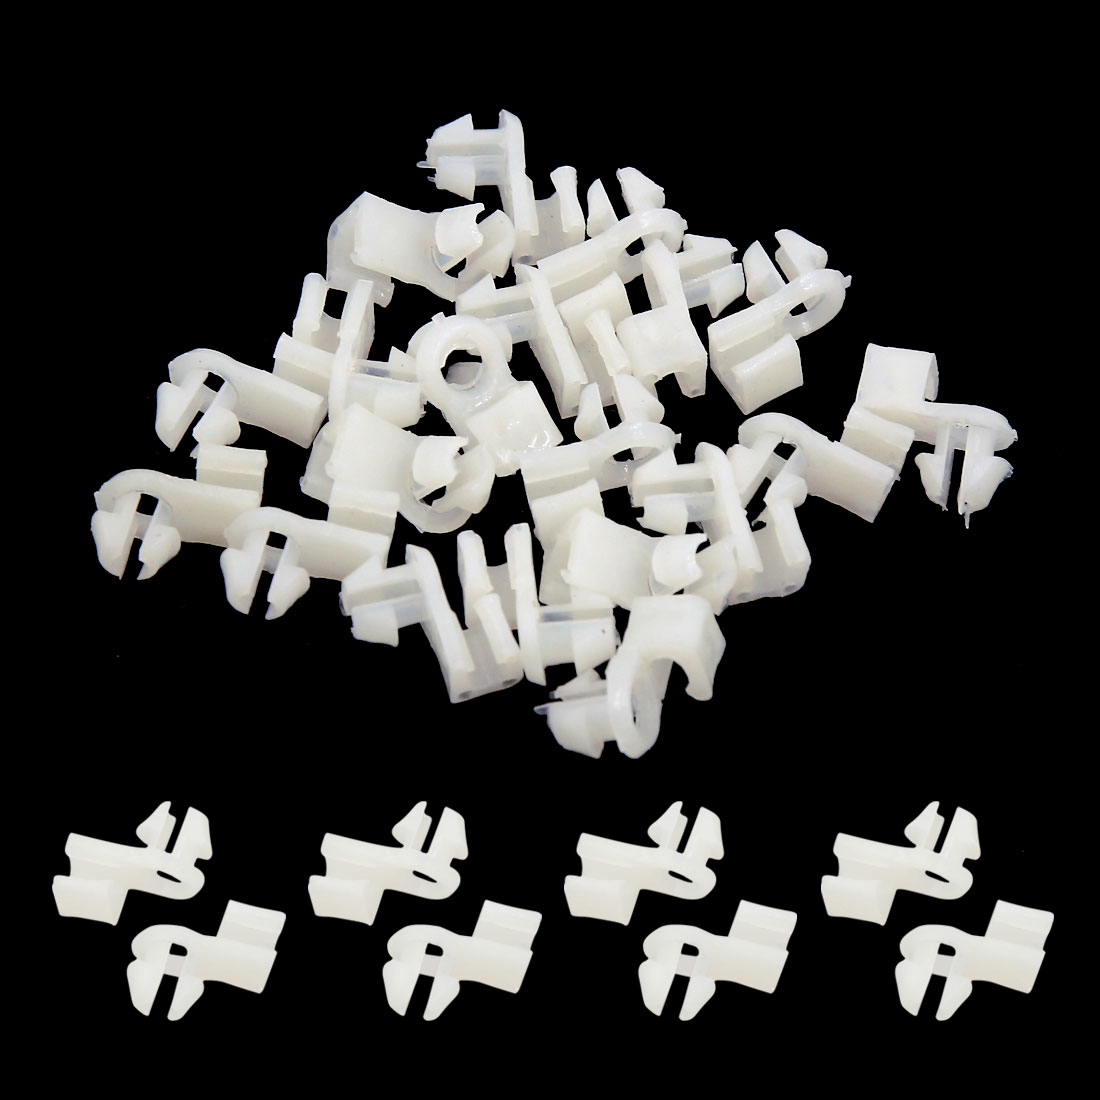 8mm Dia Hole Car Interior Door Trim Panel Moulding Fixing Clip Rivet White 20pcs - image 1 of 2